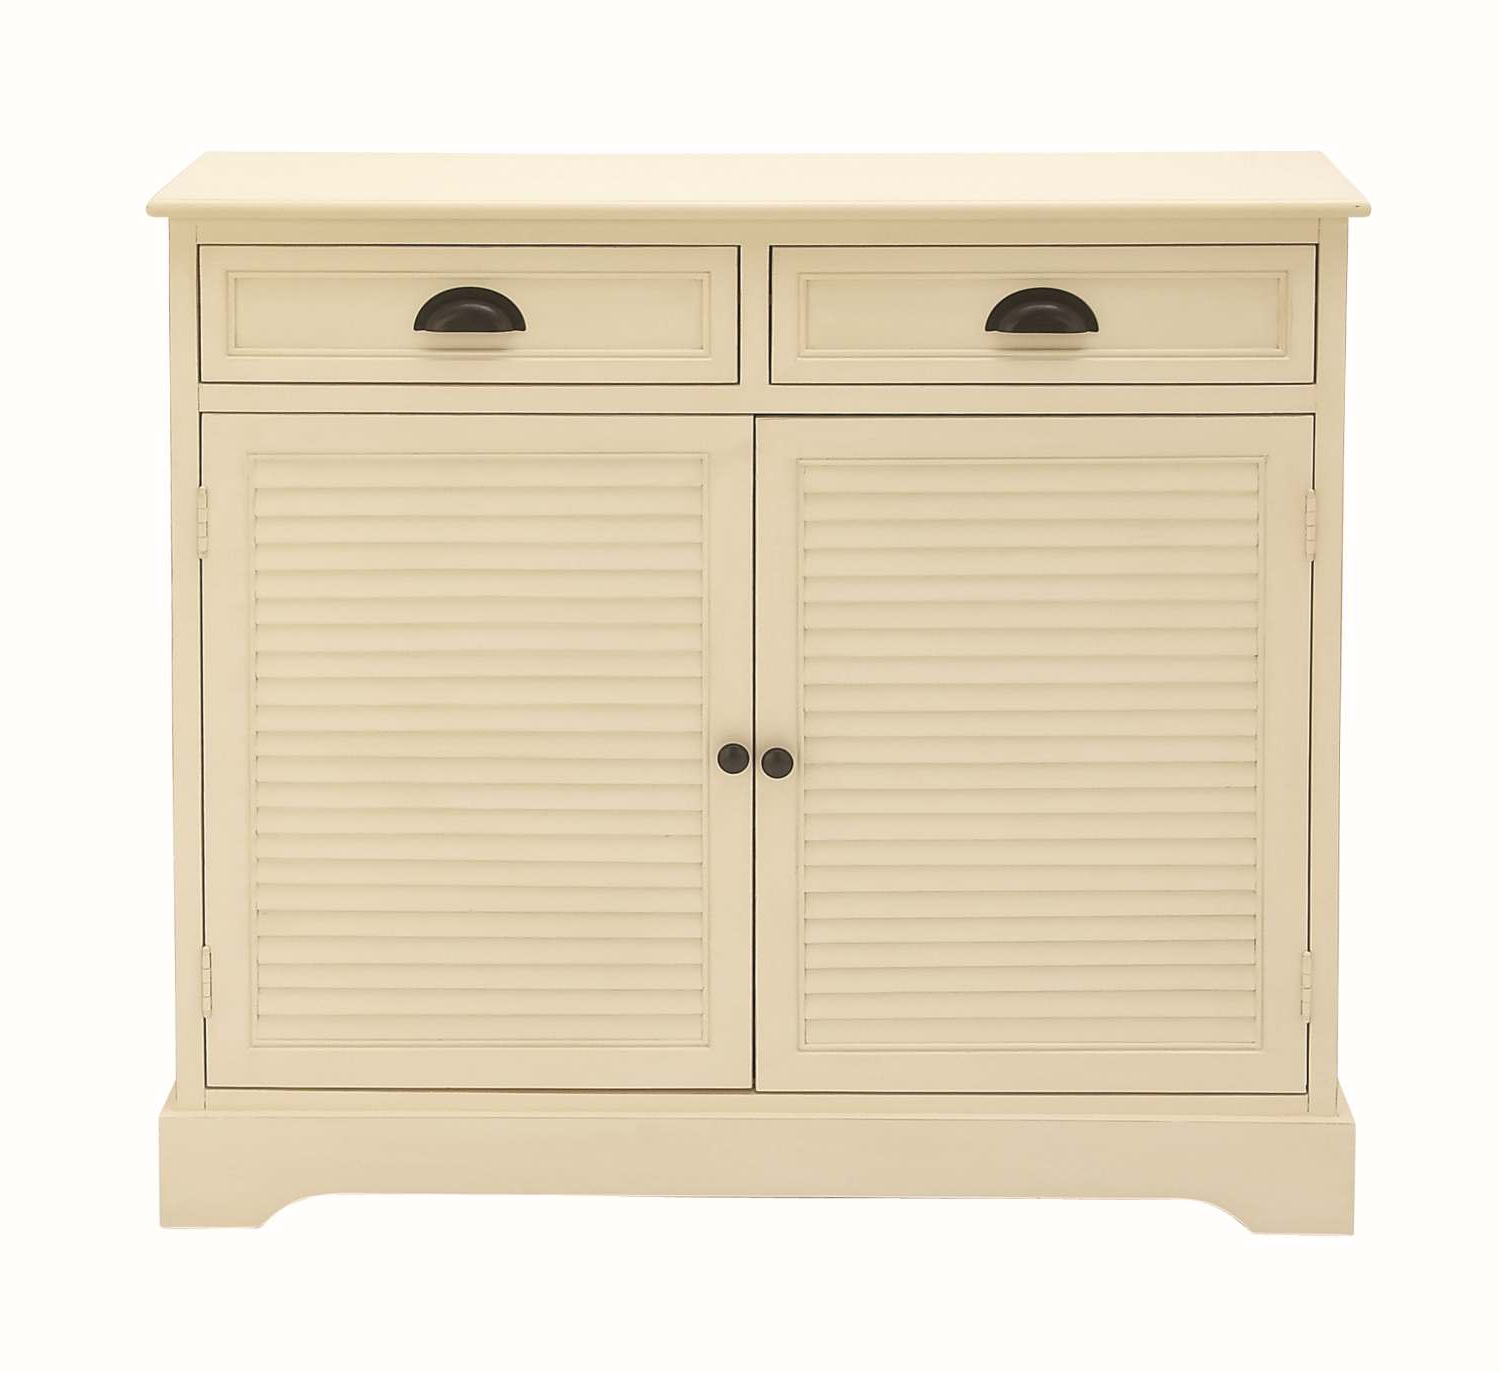 Bale Rustic Grey Sideboards For Well Known Uma Enterprises 96373 40 X 36 Inch Wood White Cabinet At Sutherlands (View 18 of 20)